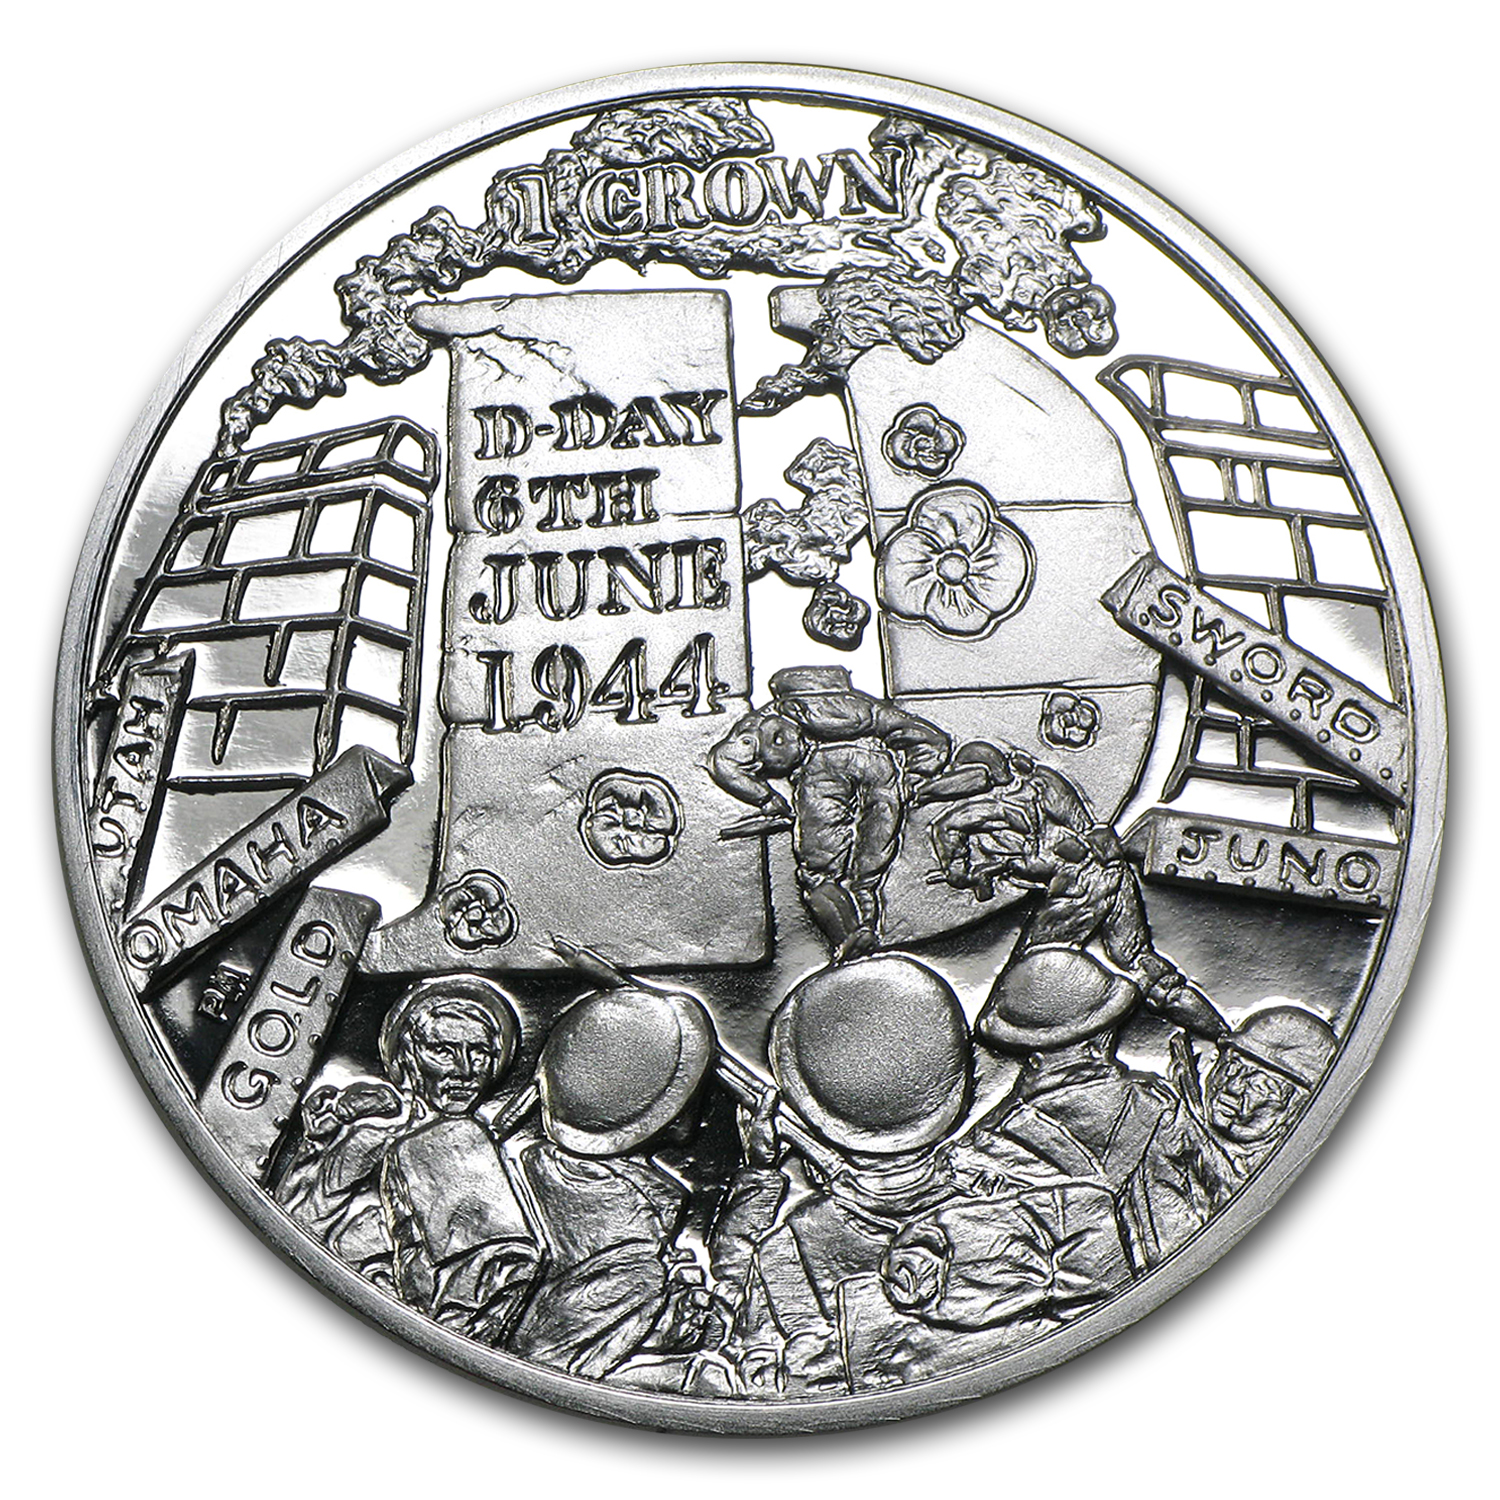 2014 Isle of Man 1 Crown 70th Anniversary D-Day Proof